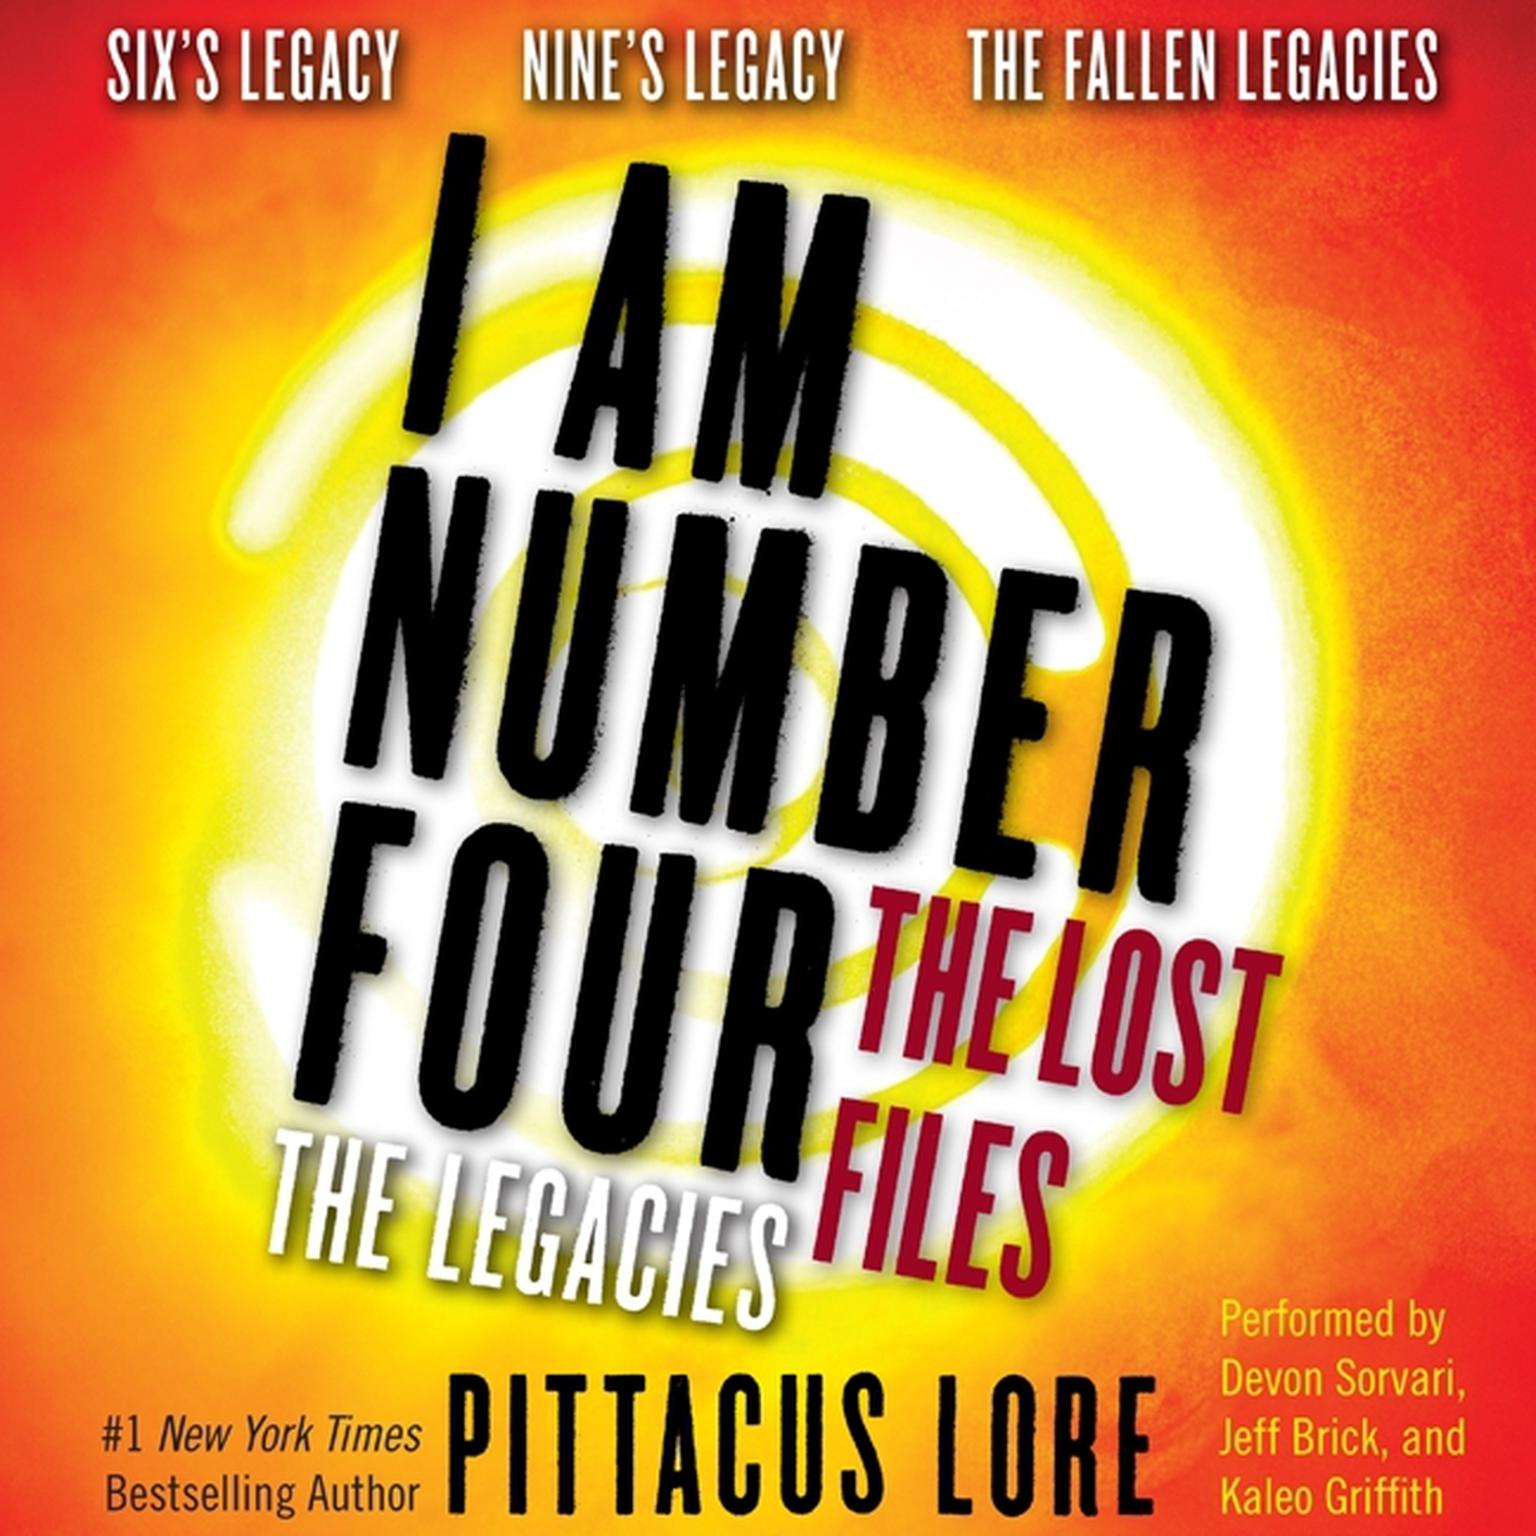 Printable I Am Number Four: The Lost Files: The Legacies: Six's Legacy, Nine's Legacy, and The Fallen Legacies Audiobook Cover Art